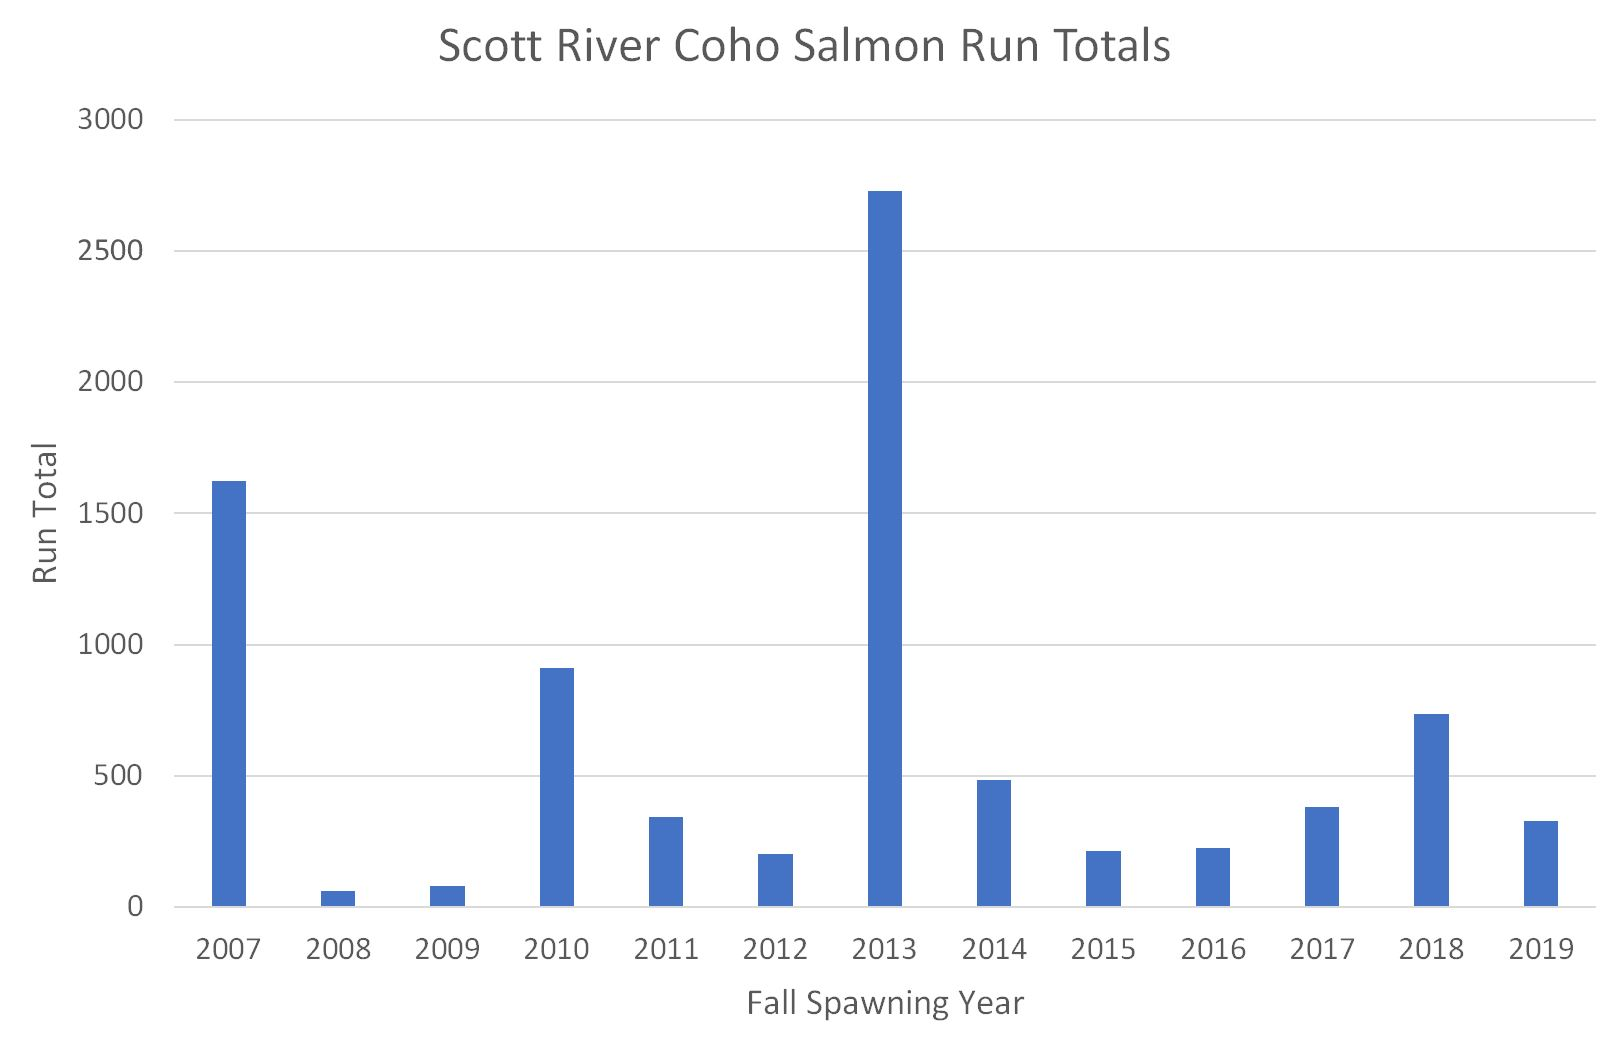 Figure 1. Escapement of adult Coho salmon to the Scott River from 2007 to 2019. Data source: CDFW, Yreka, CA.